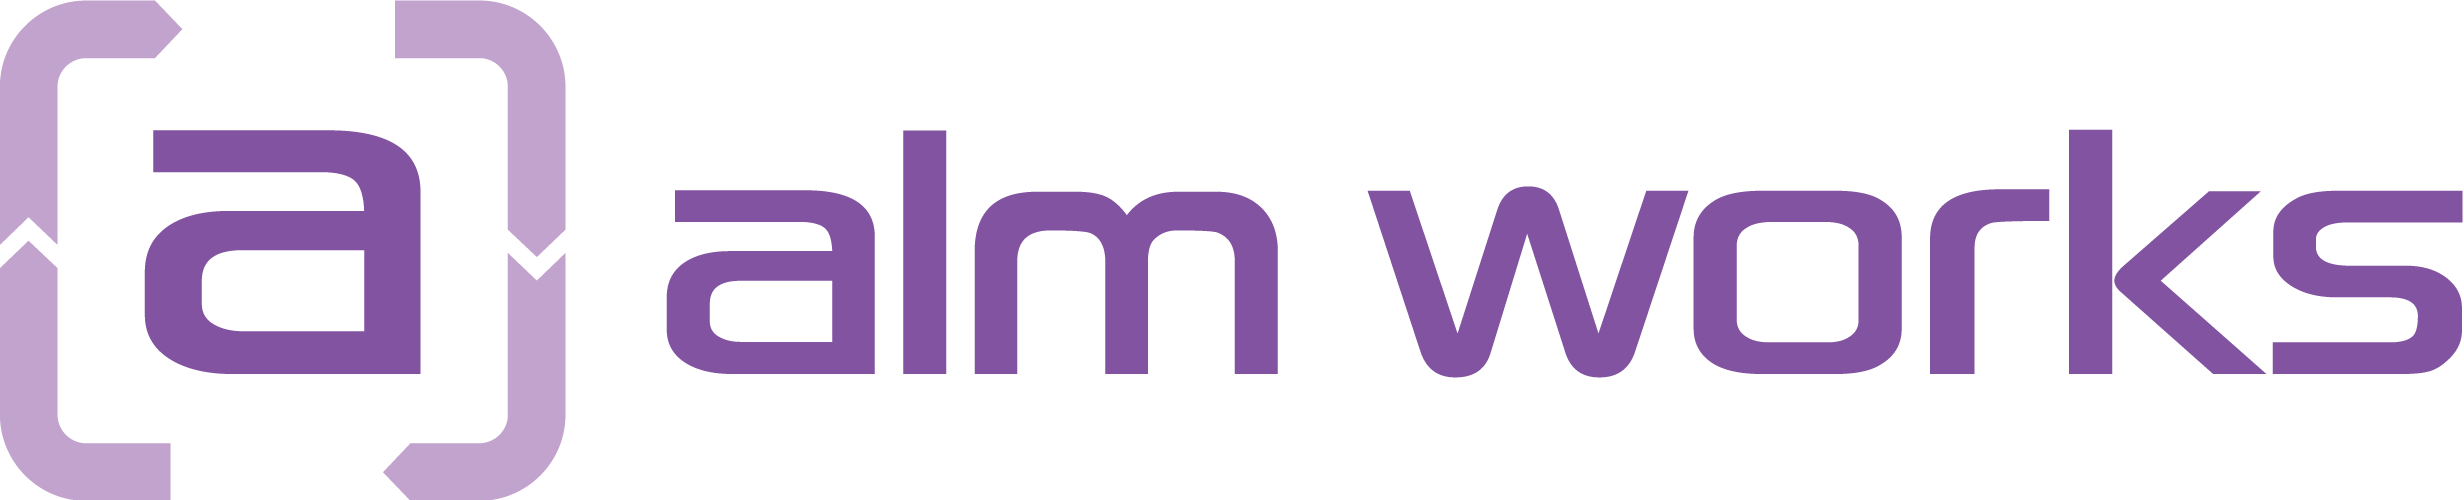 ALM Works develops products that improve software application lifecycle management and software development processes. Founded in 2004 in St. Petersburg, Russia, ALM Works became an early contributor to the Atlassian ecosystem in 2007.